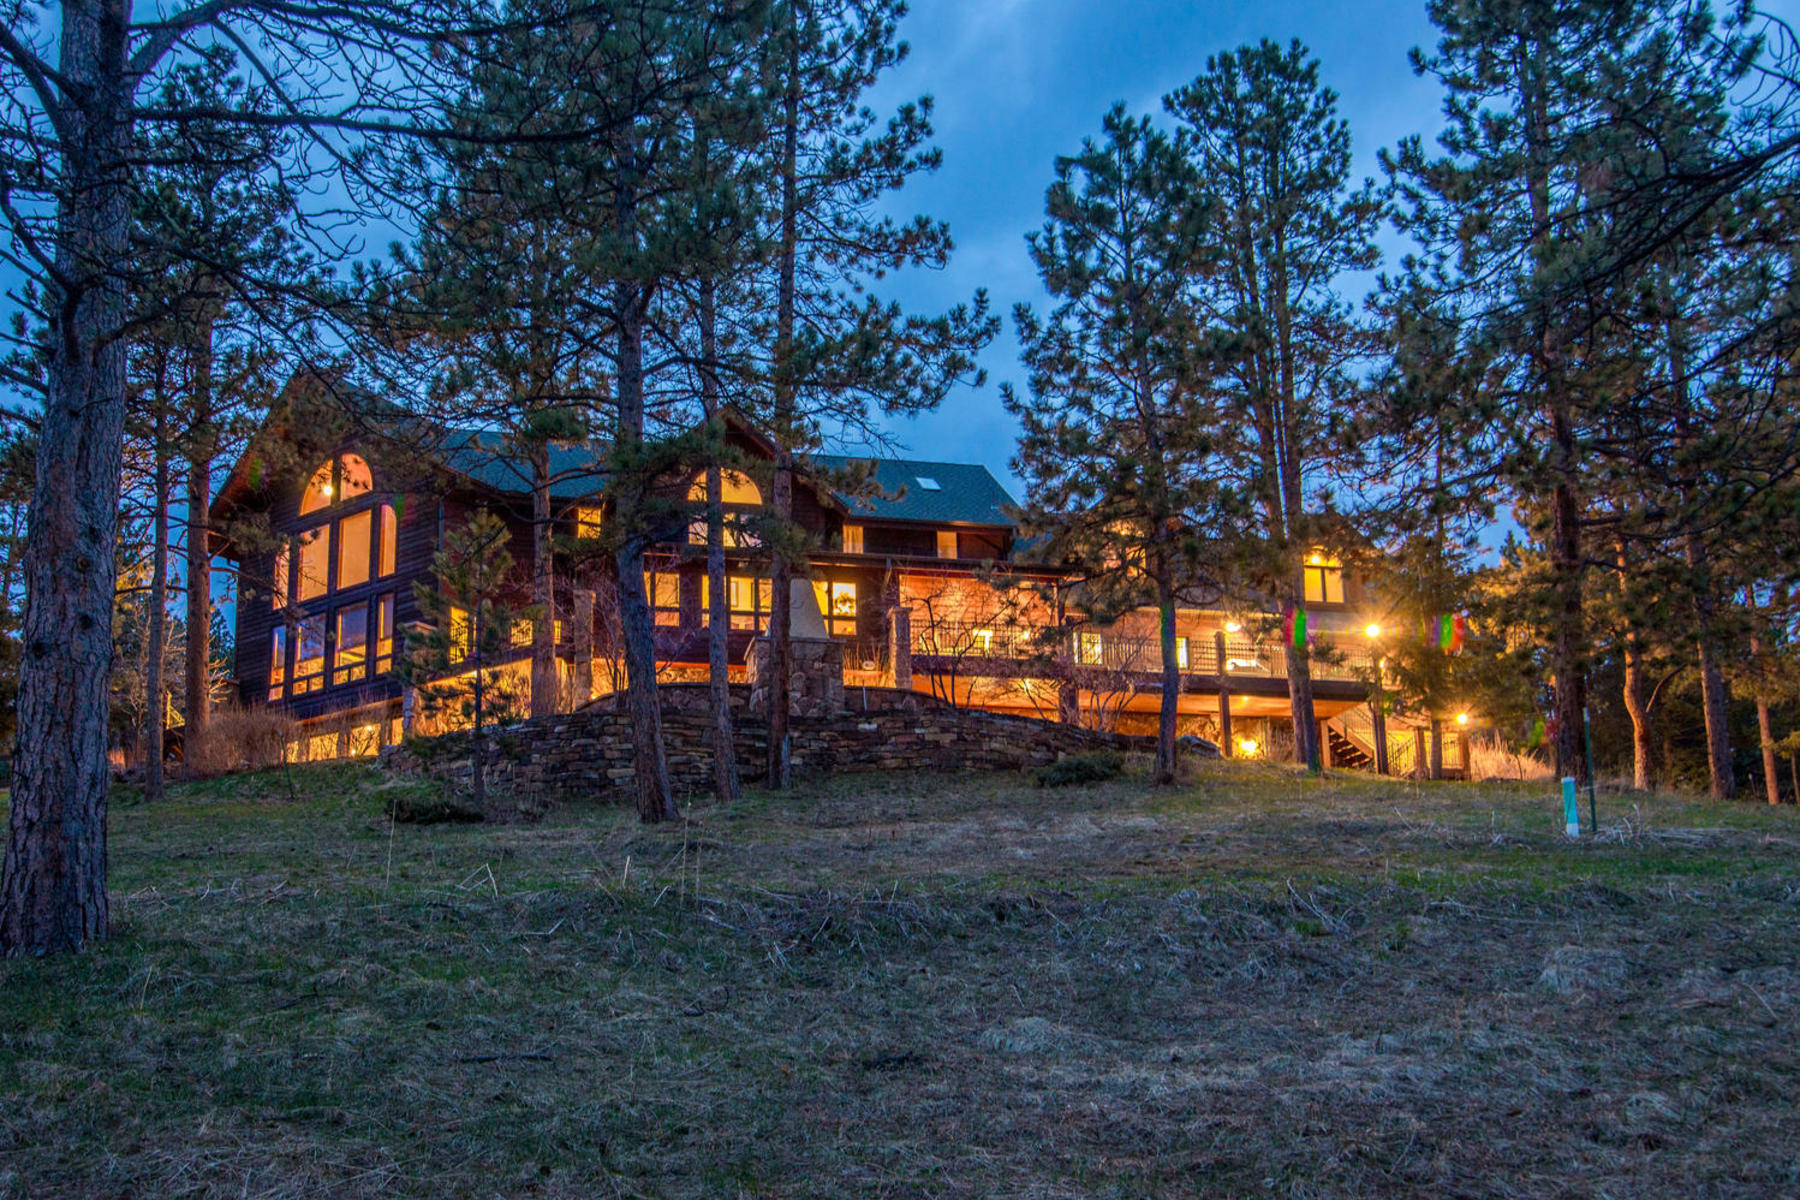 Casa Unifamiliar por un Venta en Majestic Estate Nestled on 42.42 Acres 28775 Cragmont Drive Evergreen, Colorado 80439 Estados Unidos